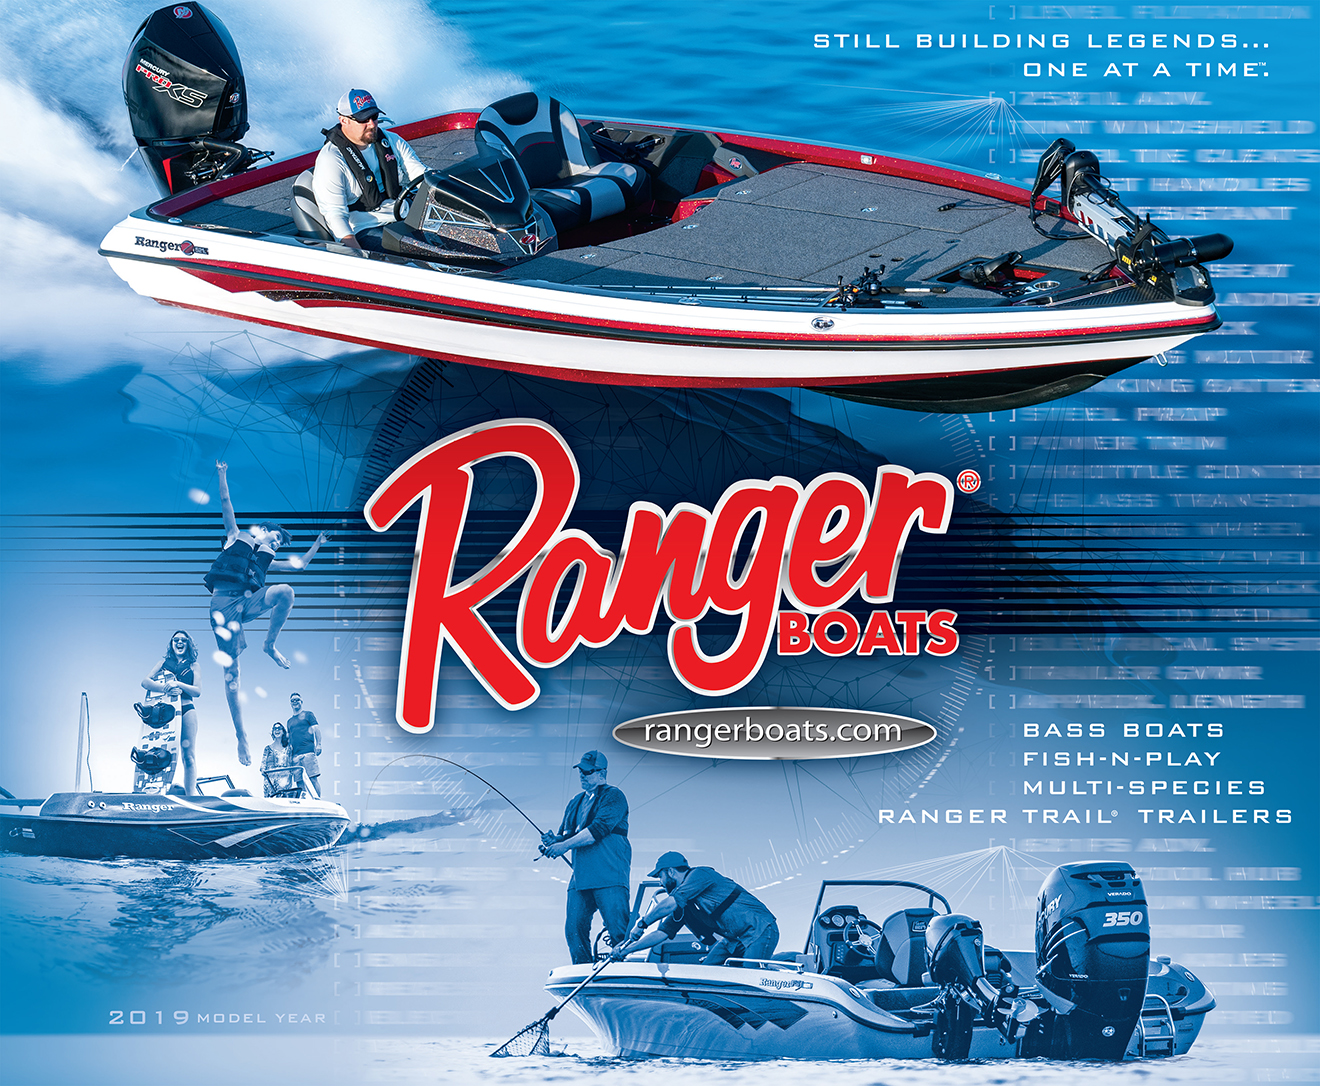 Interested in a Ranger boat? Let us send you a free catalog!